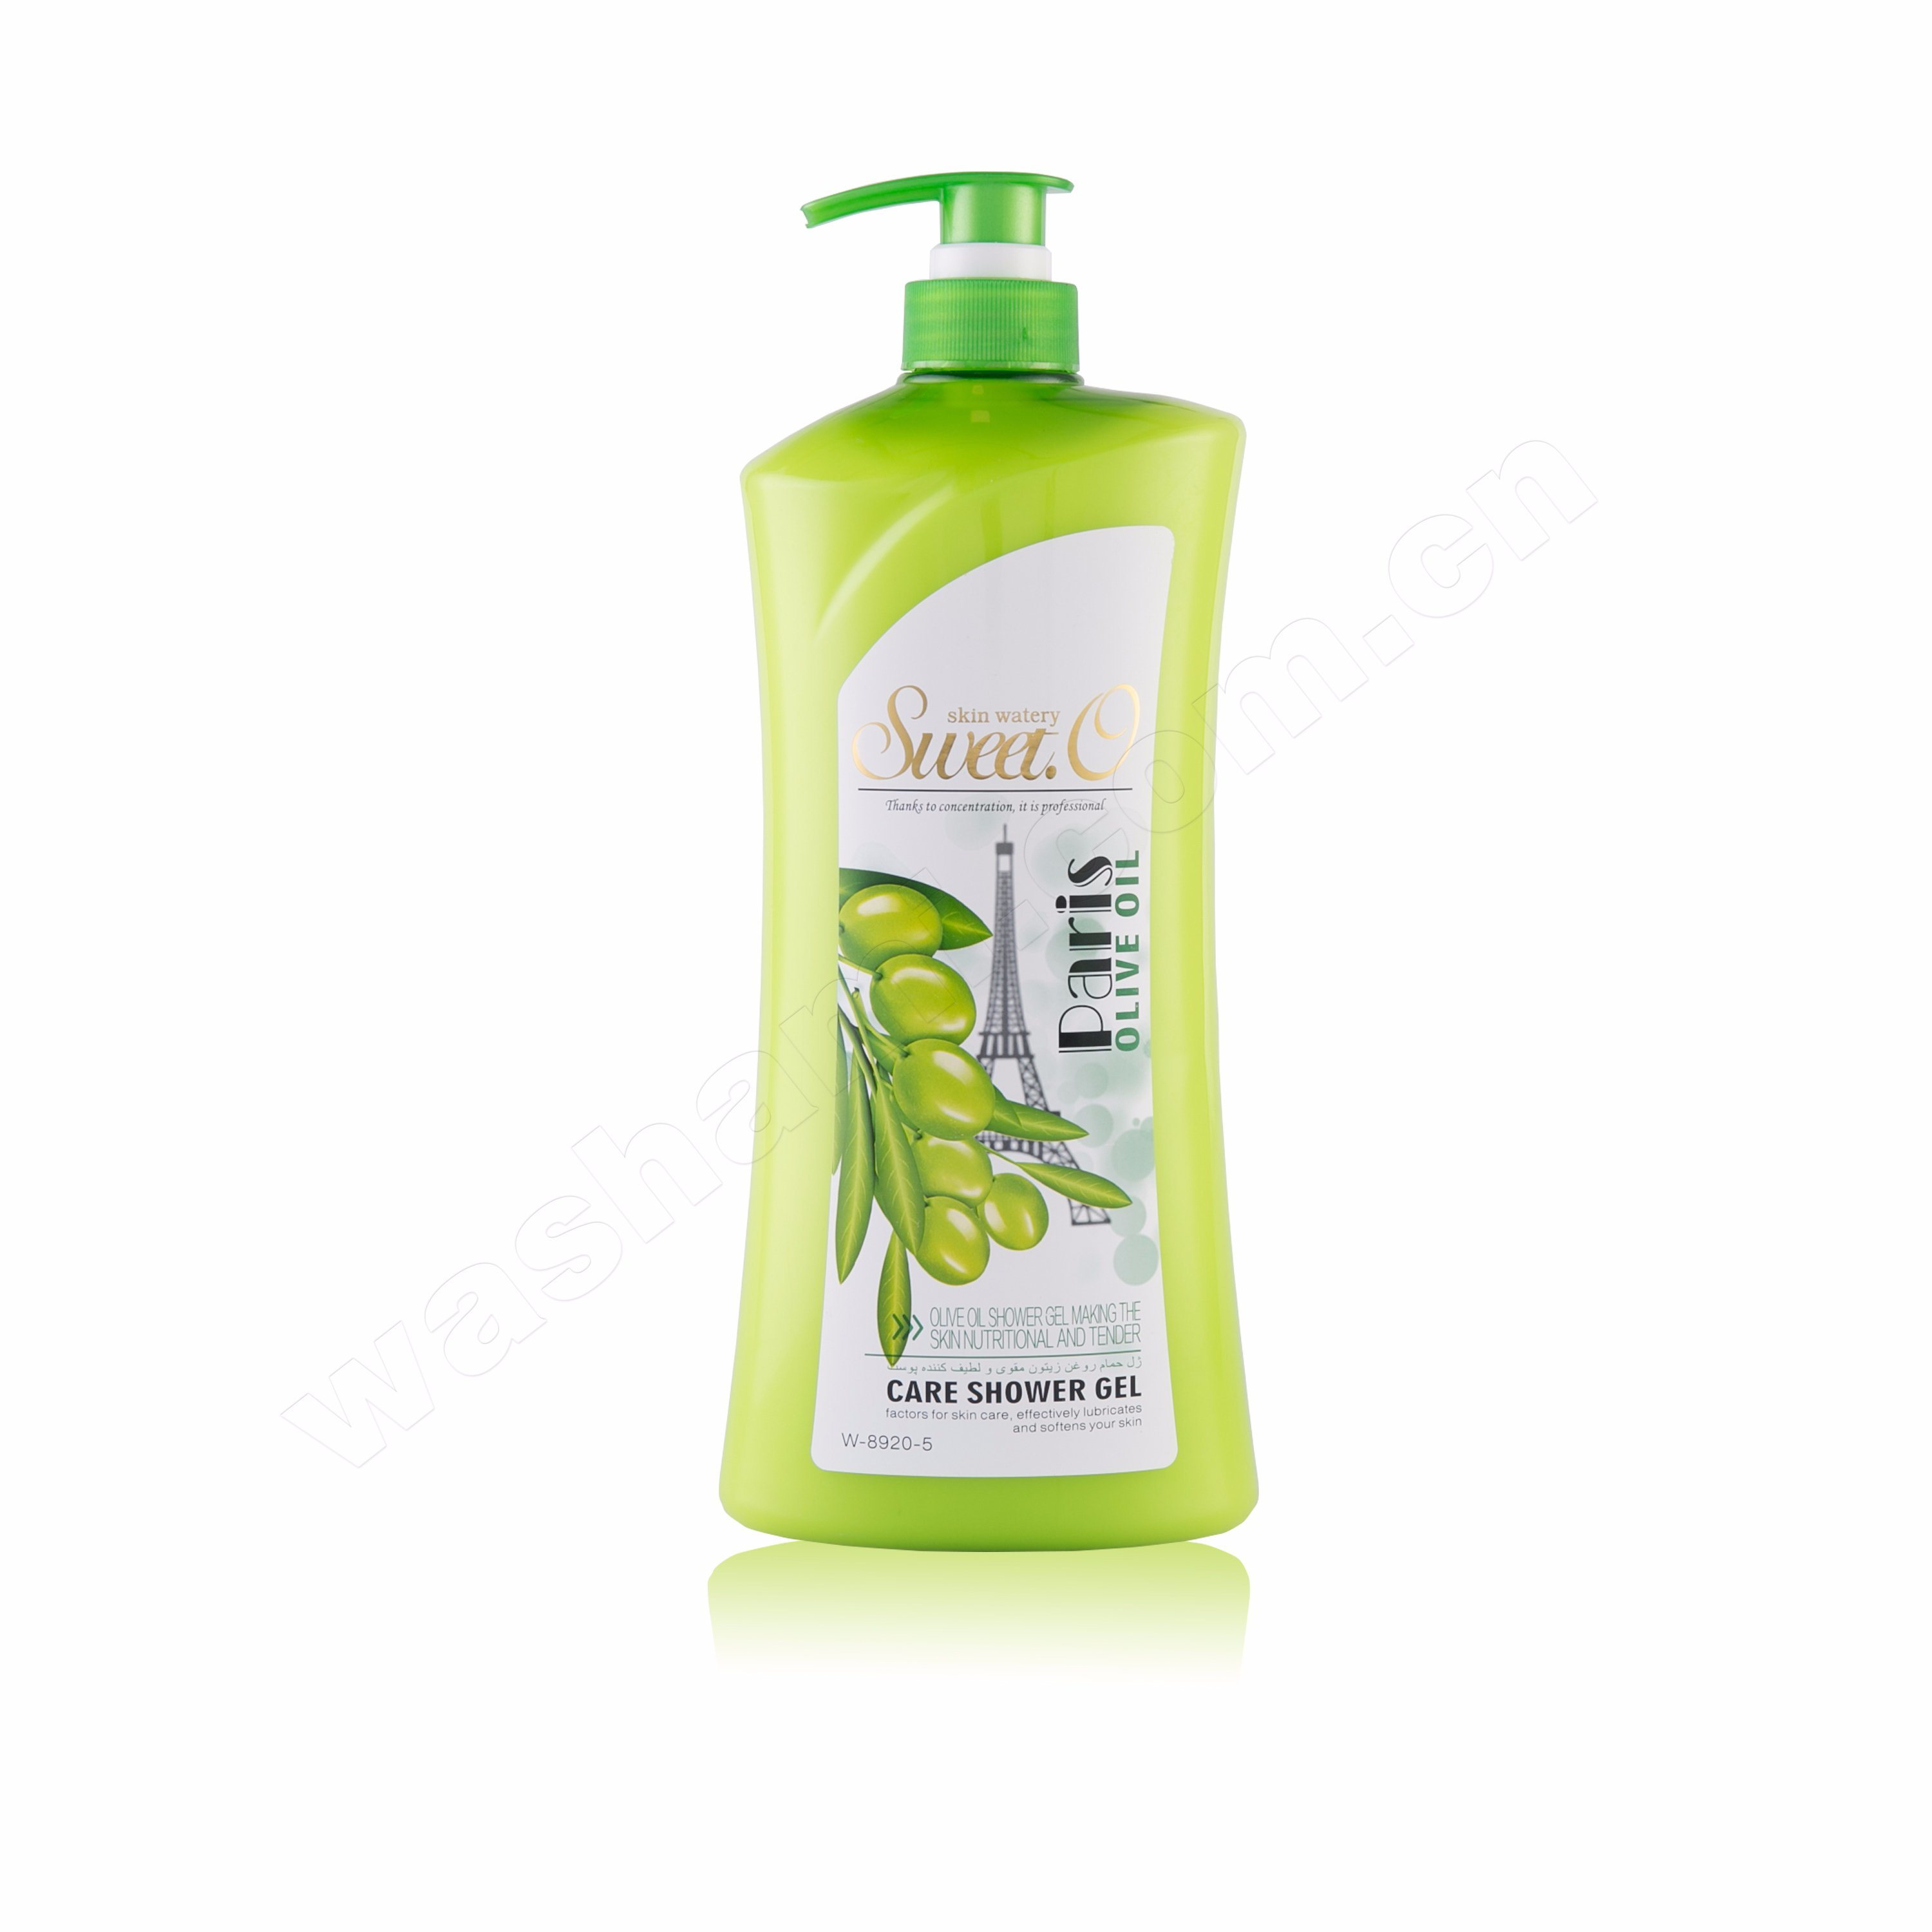 Washami 1480ml Sweet. O Care Nutrition Skin Body Wash, Whitening Shower Gel